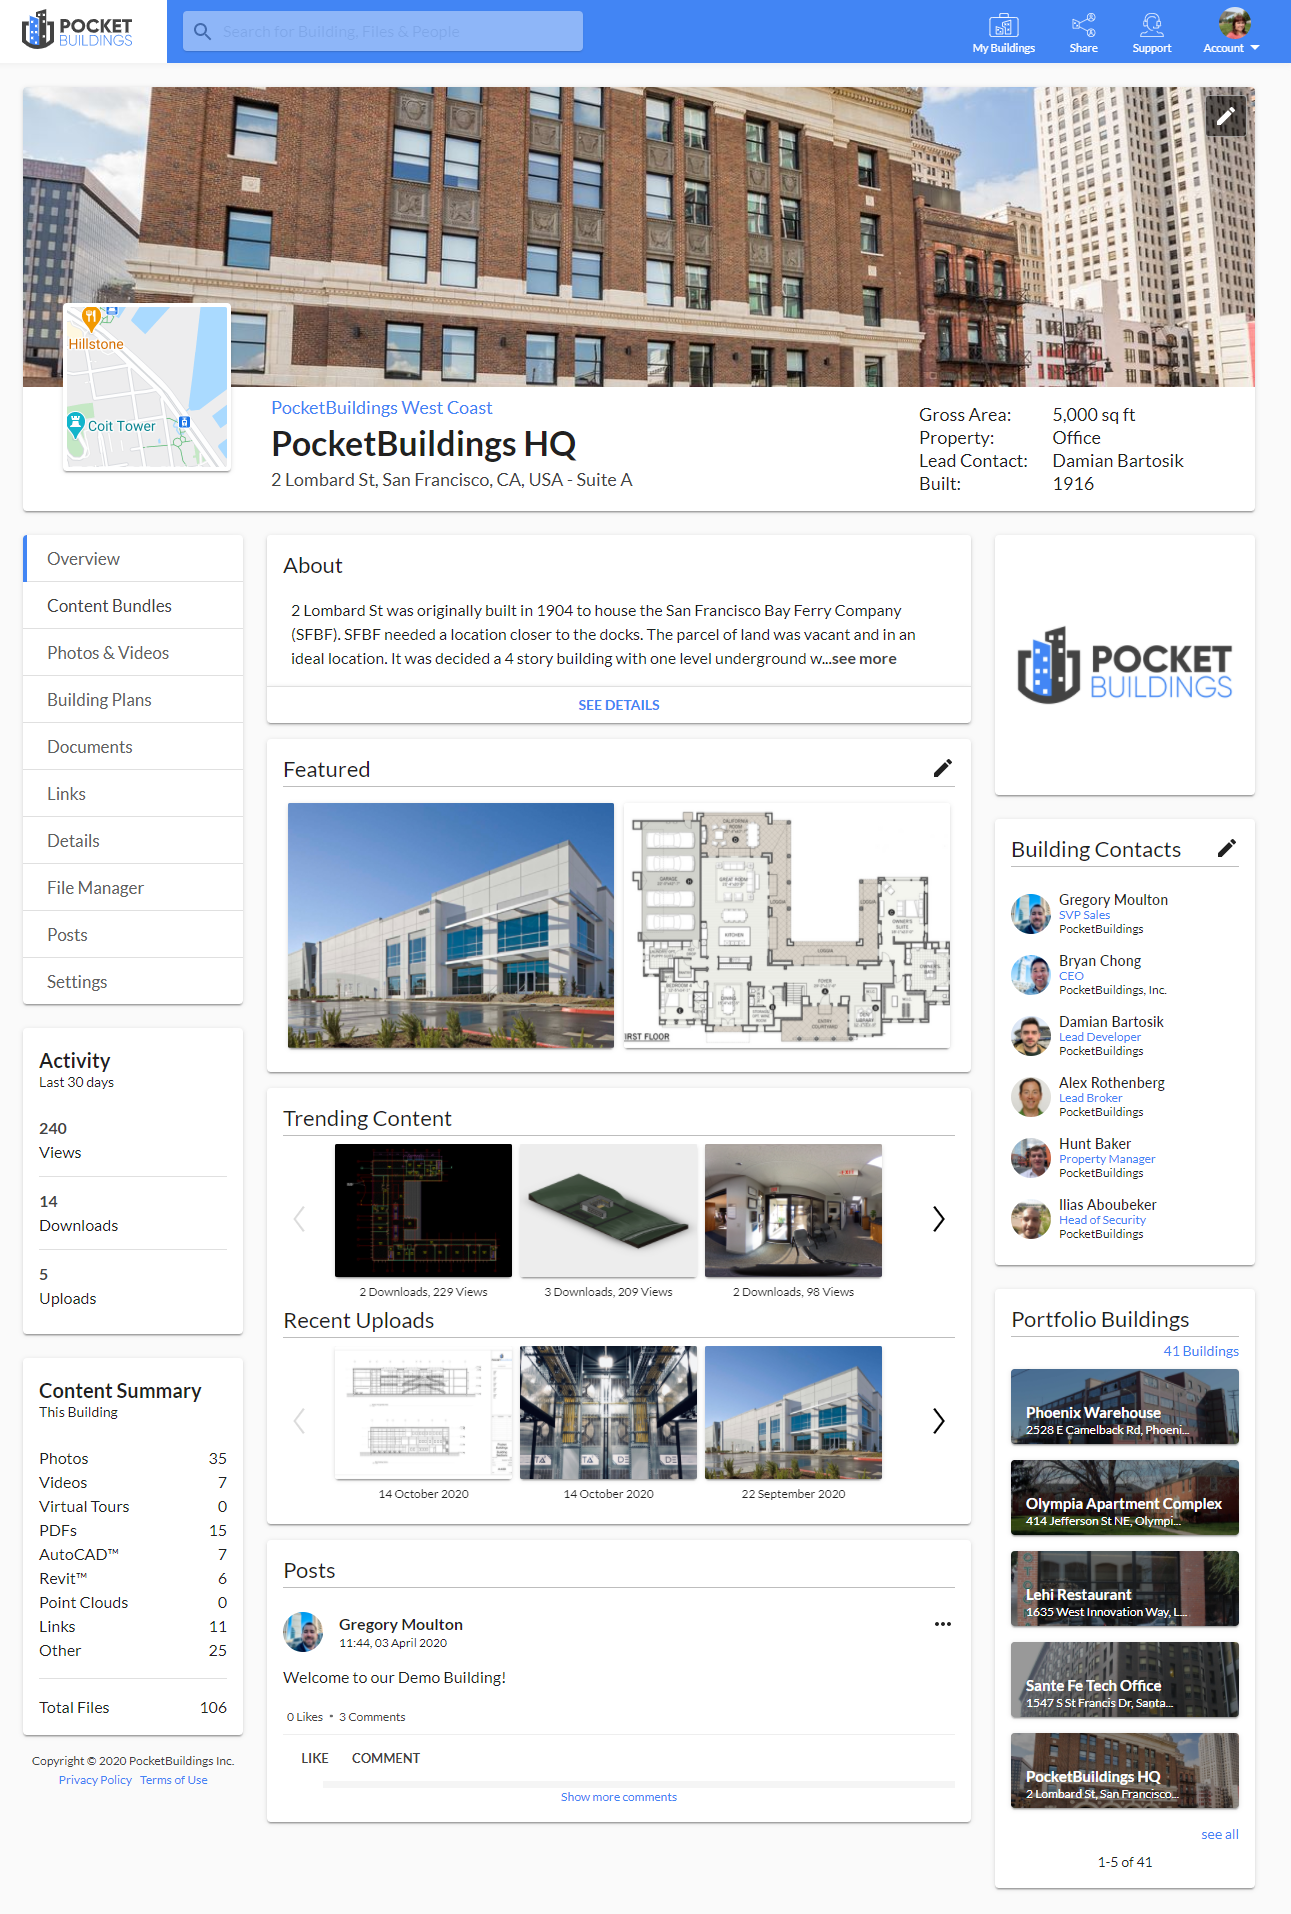 Robust Building Archive of Documentation & Media